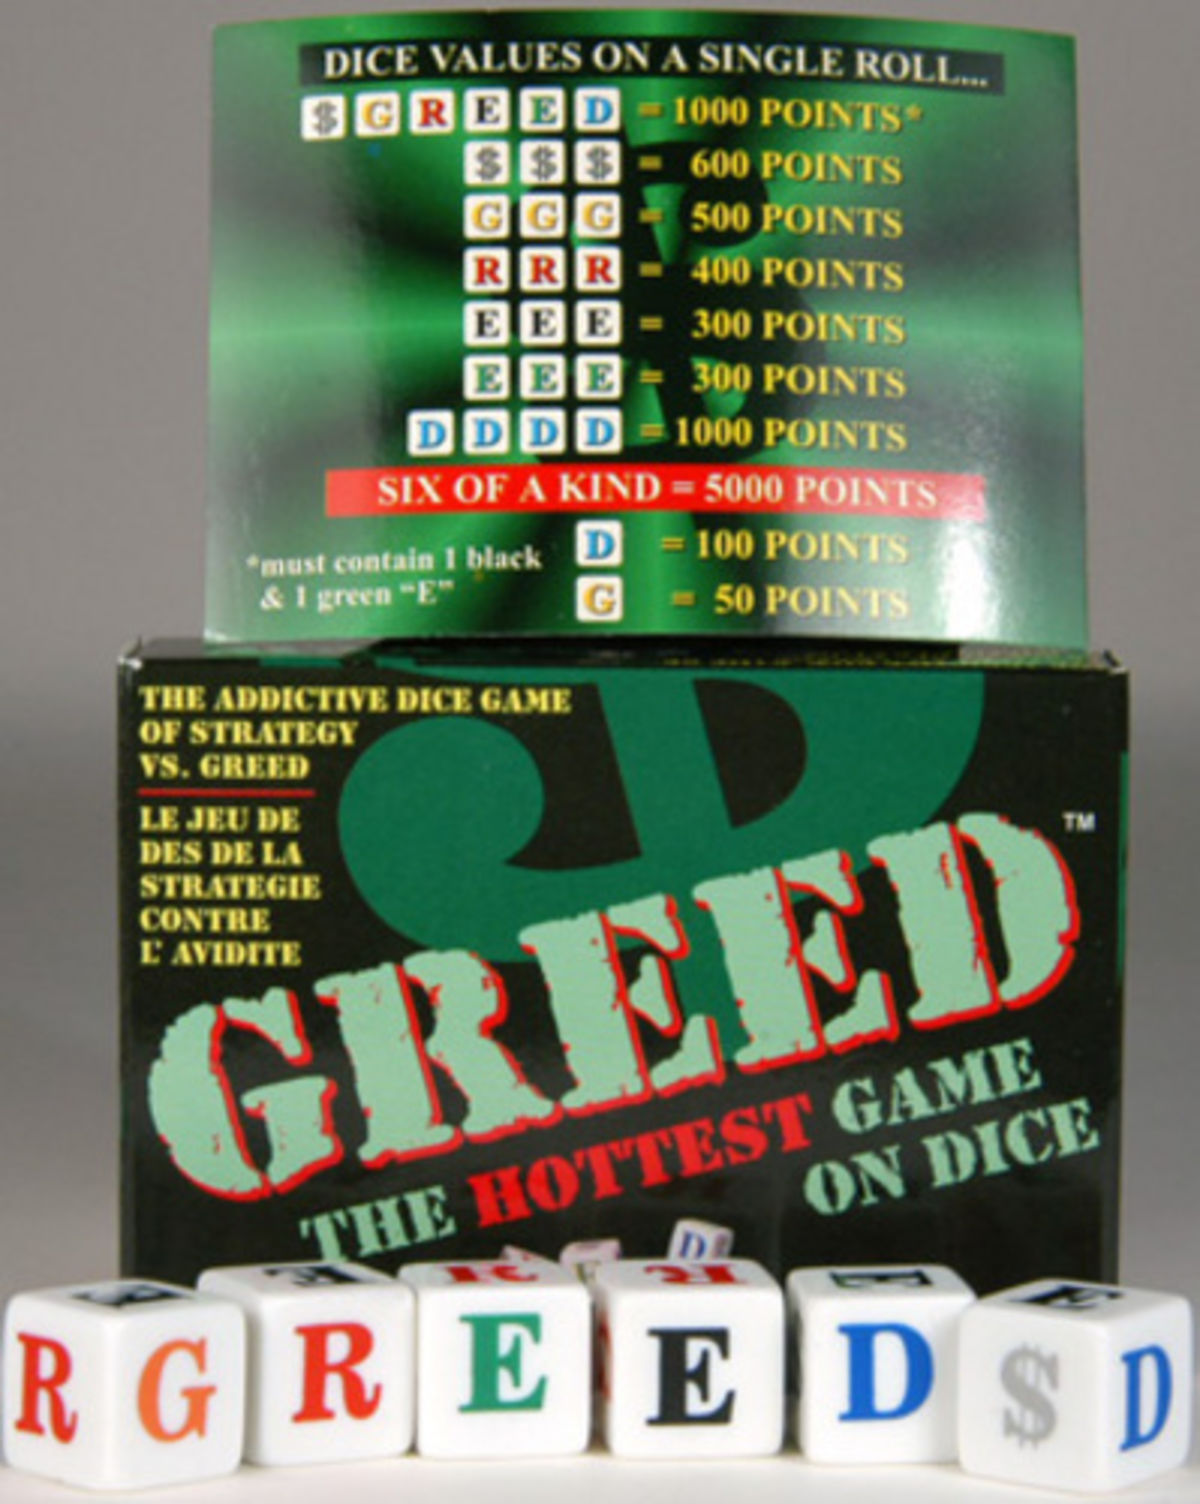 50 Quotes on Greed | Psychology Today